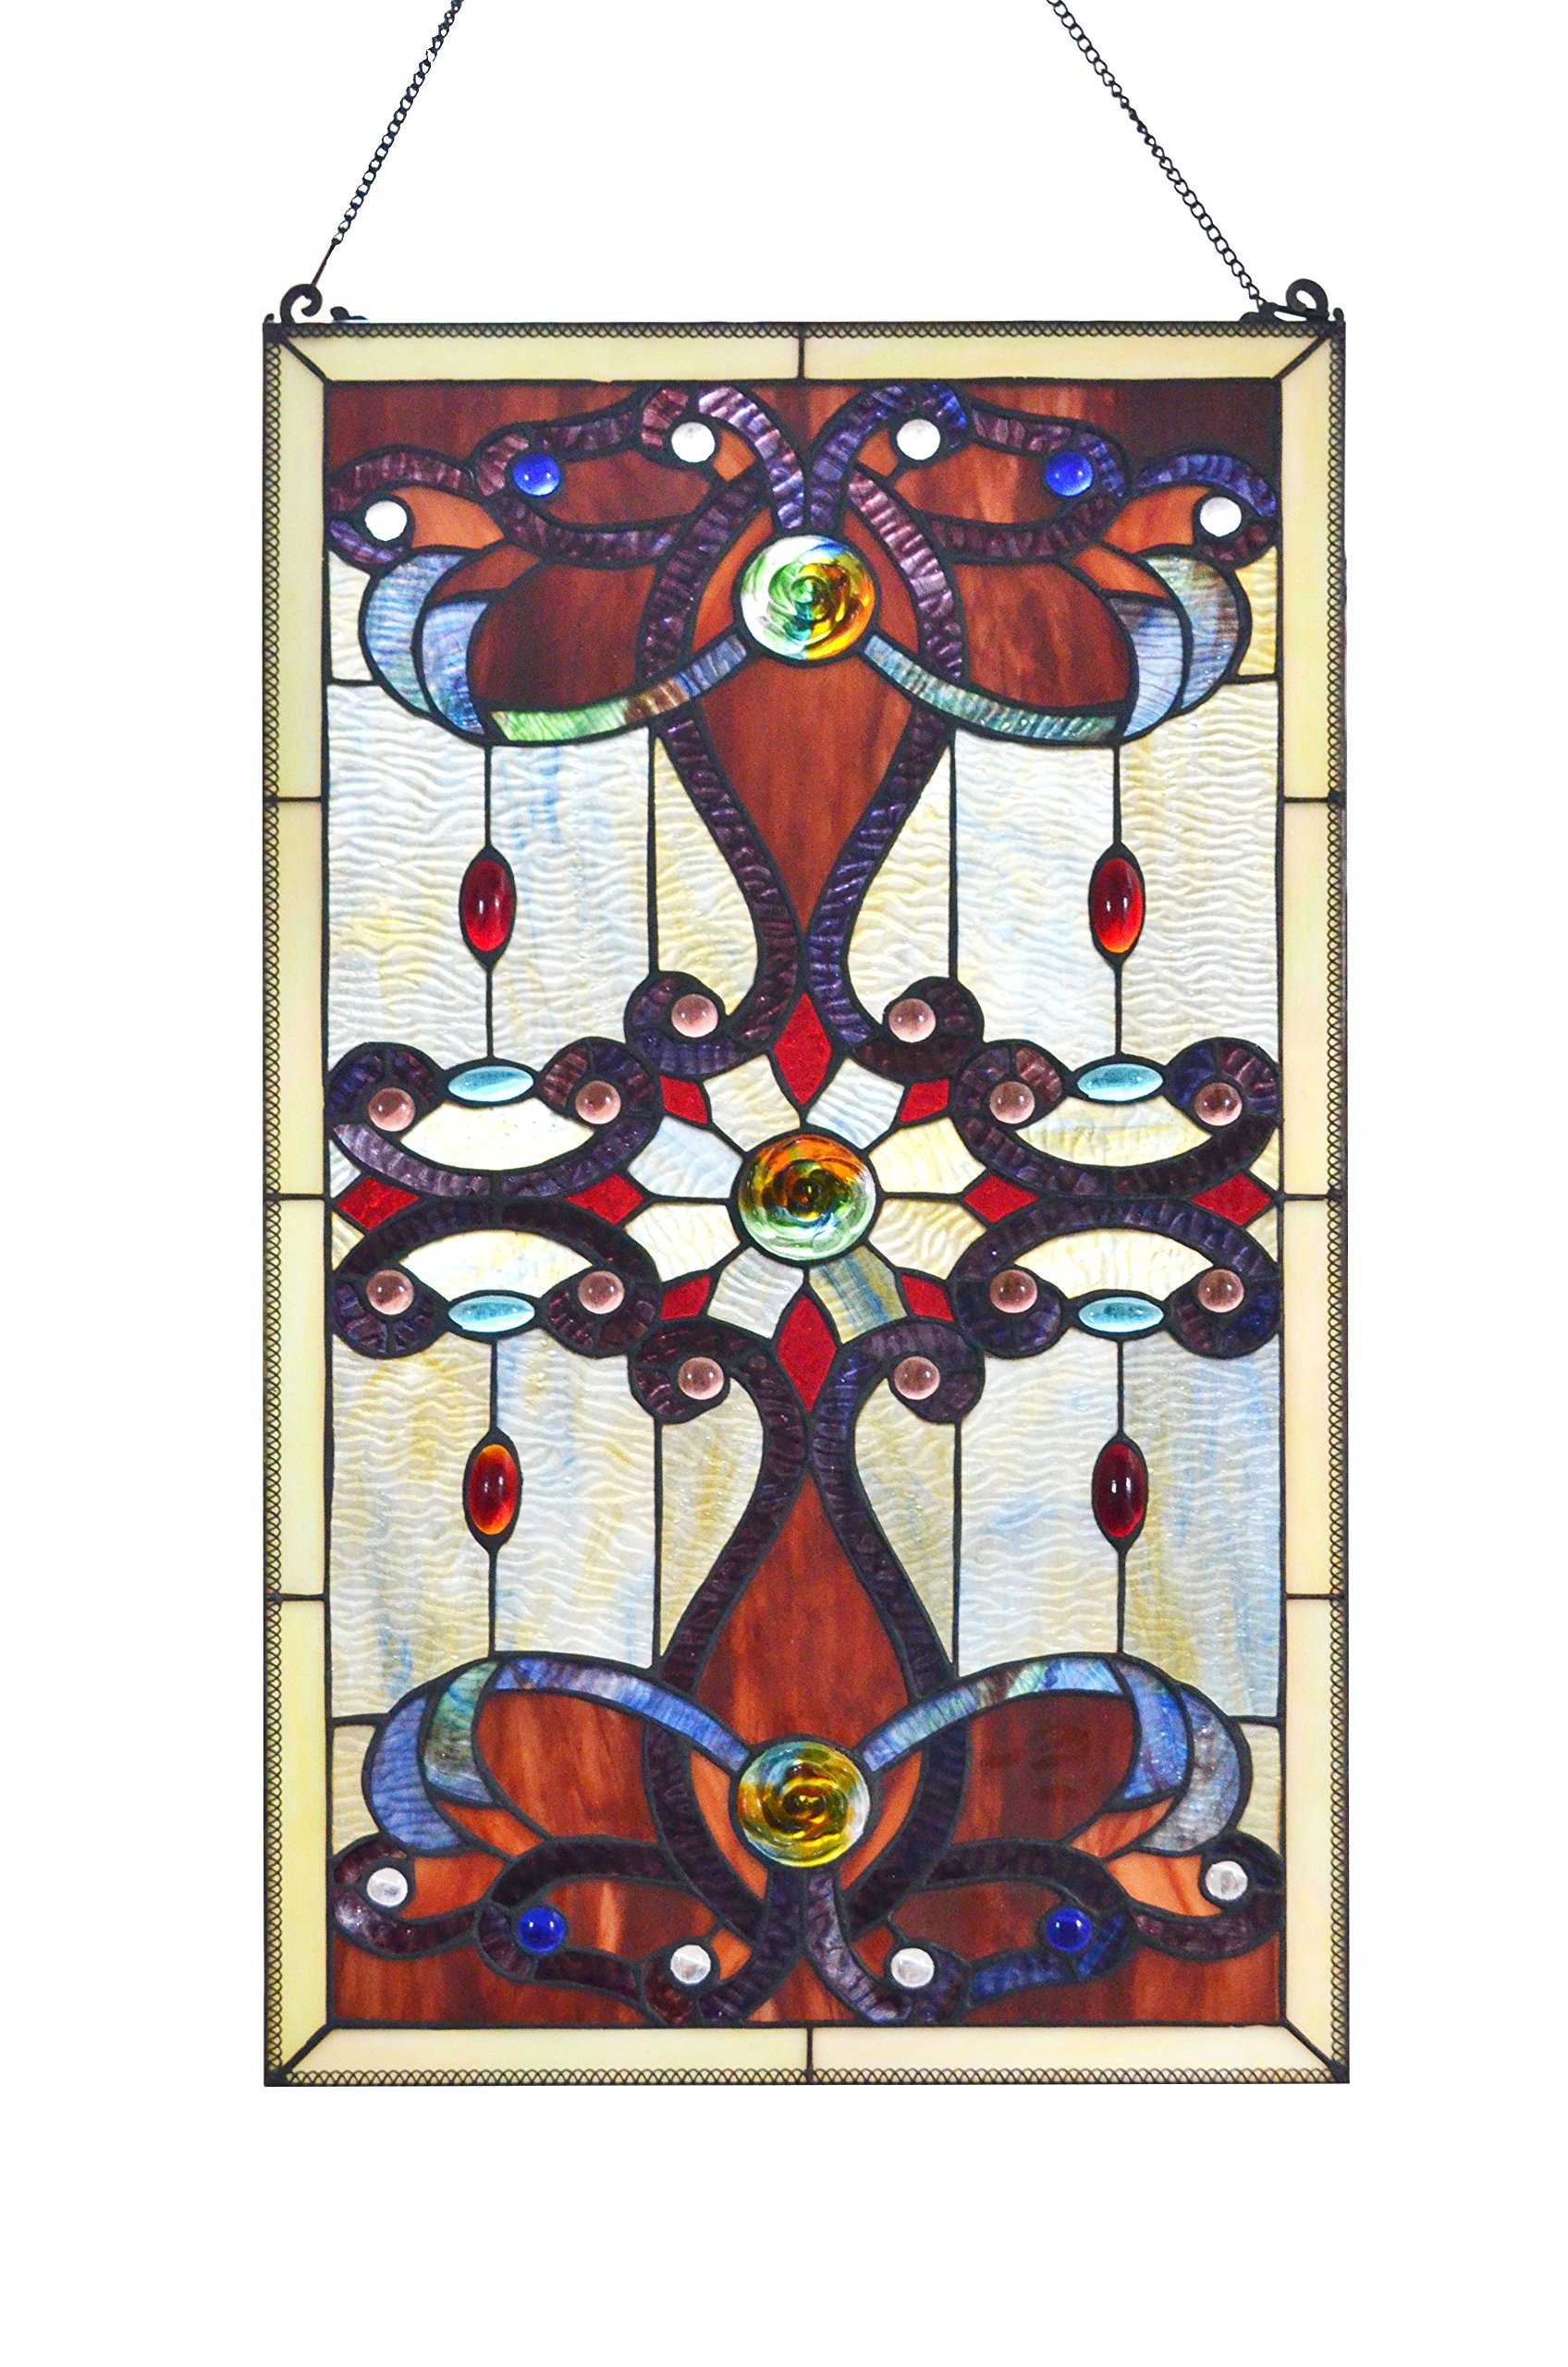 LDGJ Brandi Collection Stained Glass Panel: 26 Inch Decorative Window Hanging - Tiffany Style Framed Hangings for the Wall or Windows - Large Vertical Decoration in Brown by LDGJ